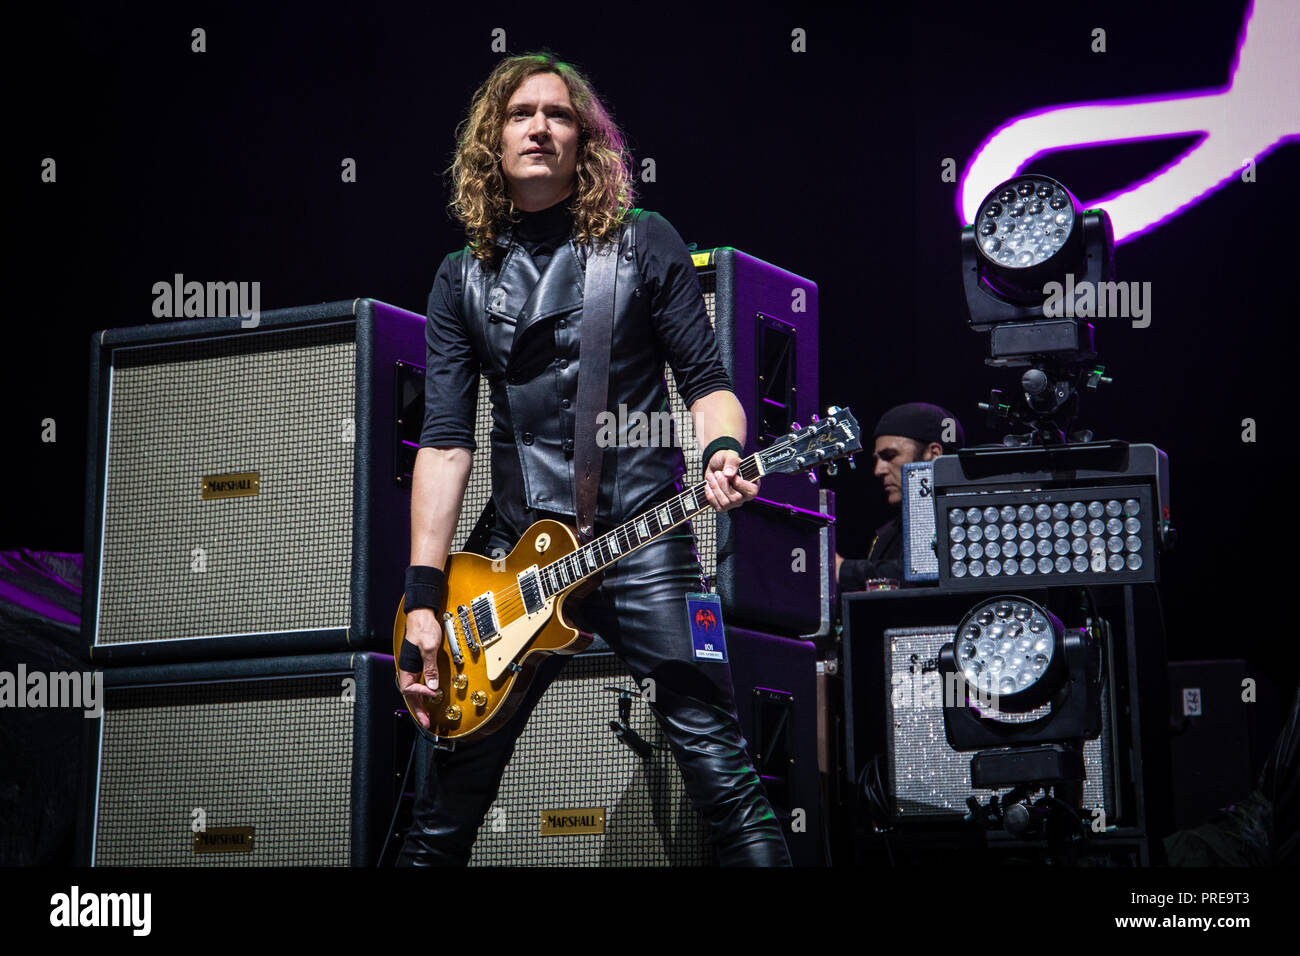 The Darkness, Manchester Arena June 2018 - Stock Image